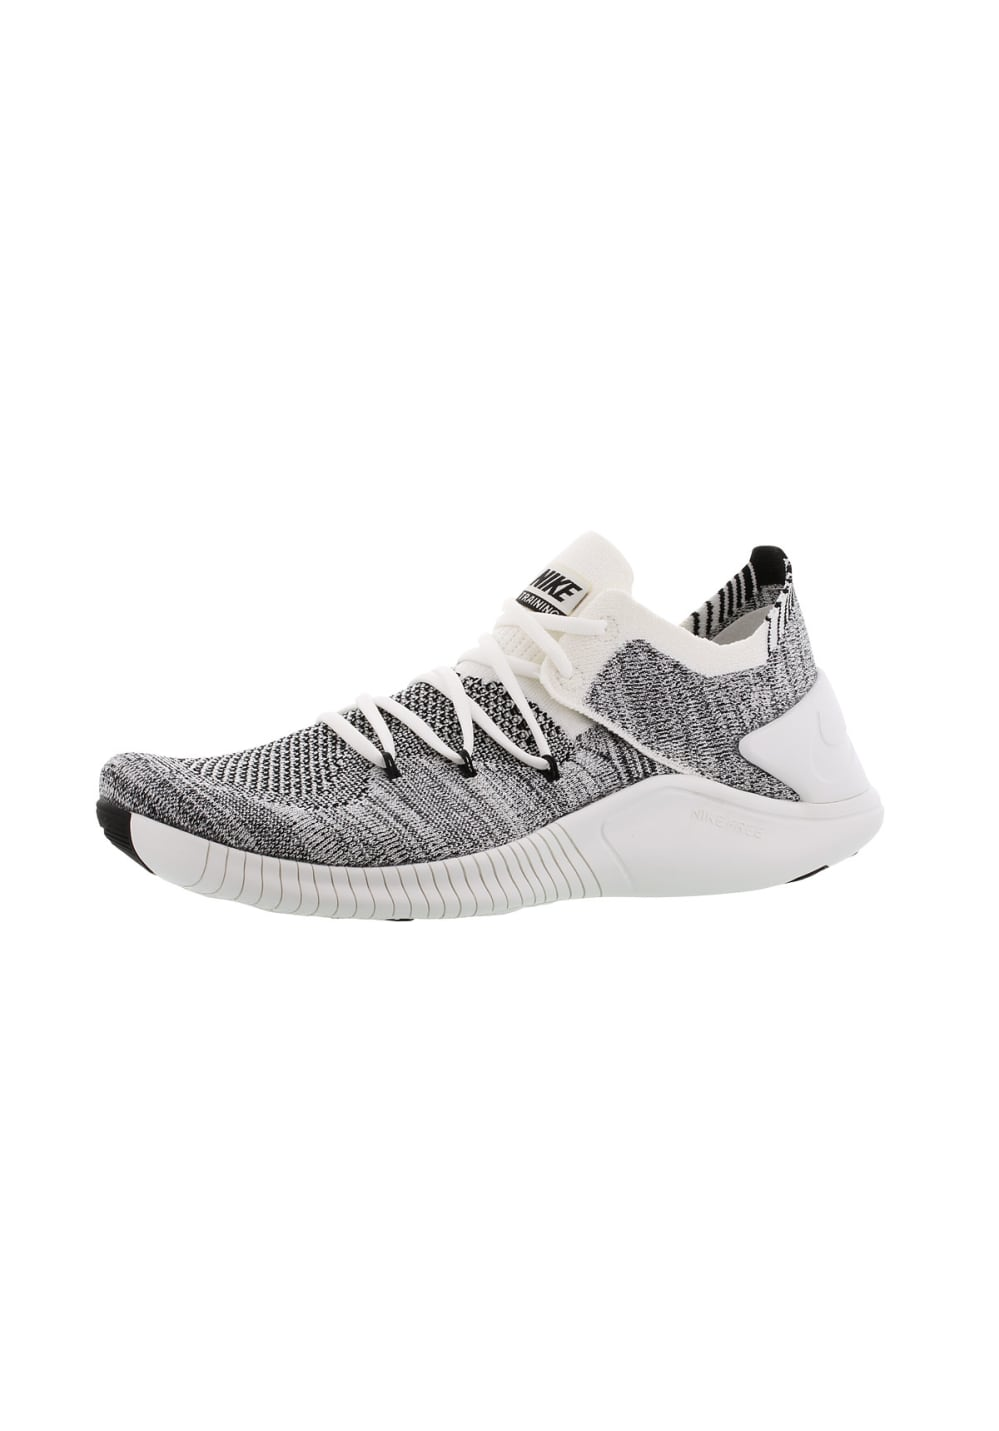 Nike Free Tr Flyknit 3 Chaussures fitness pour Femme Blanc